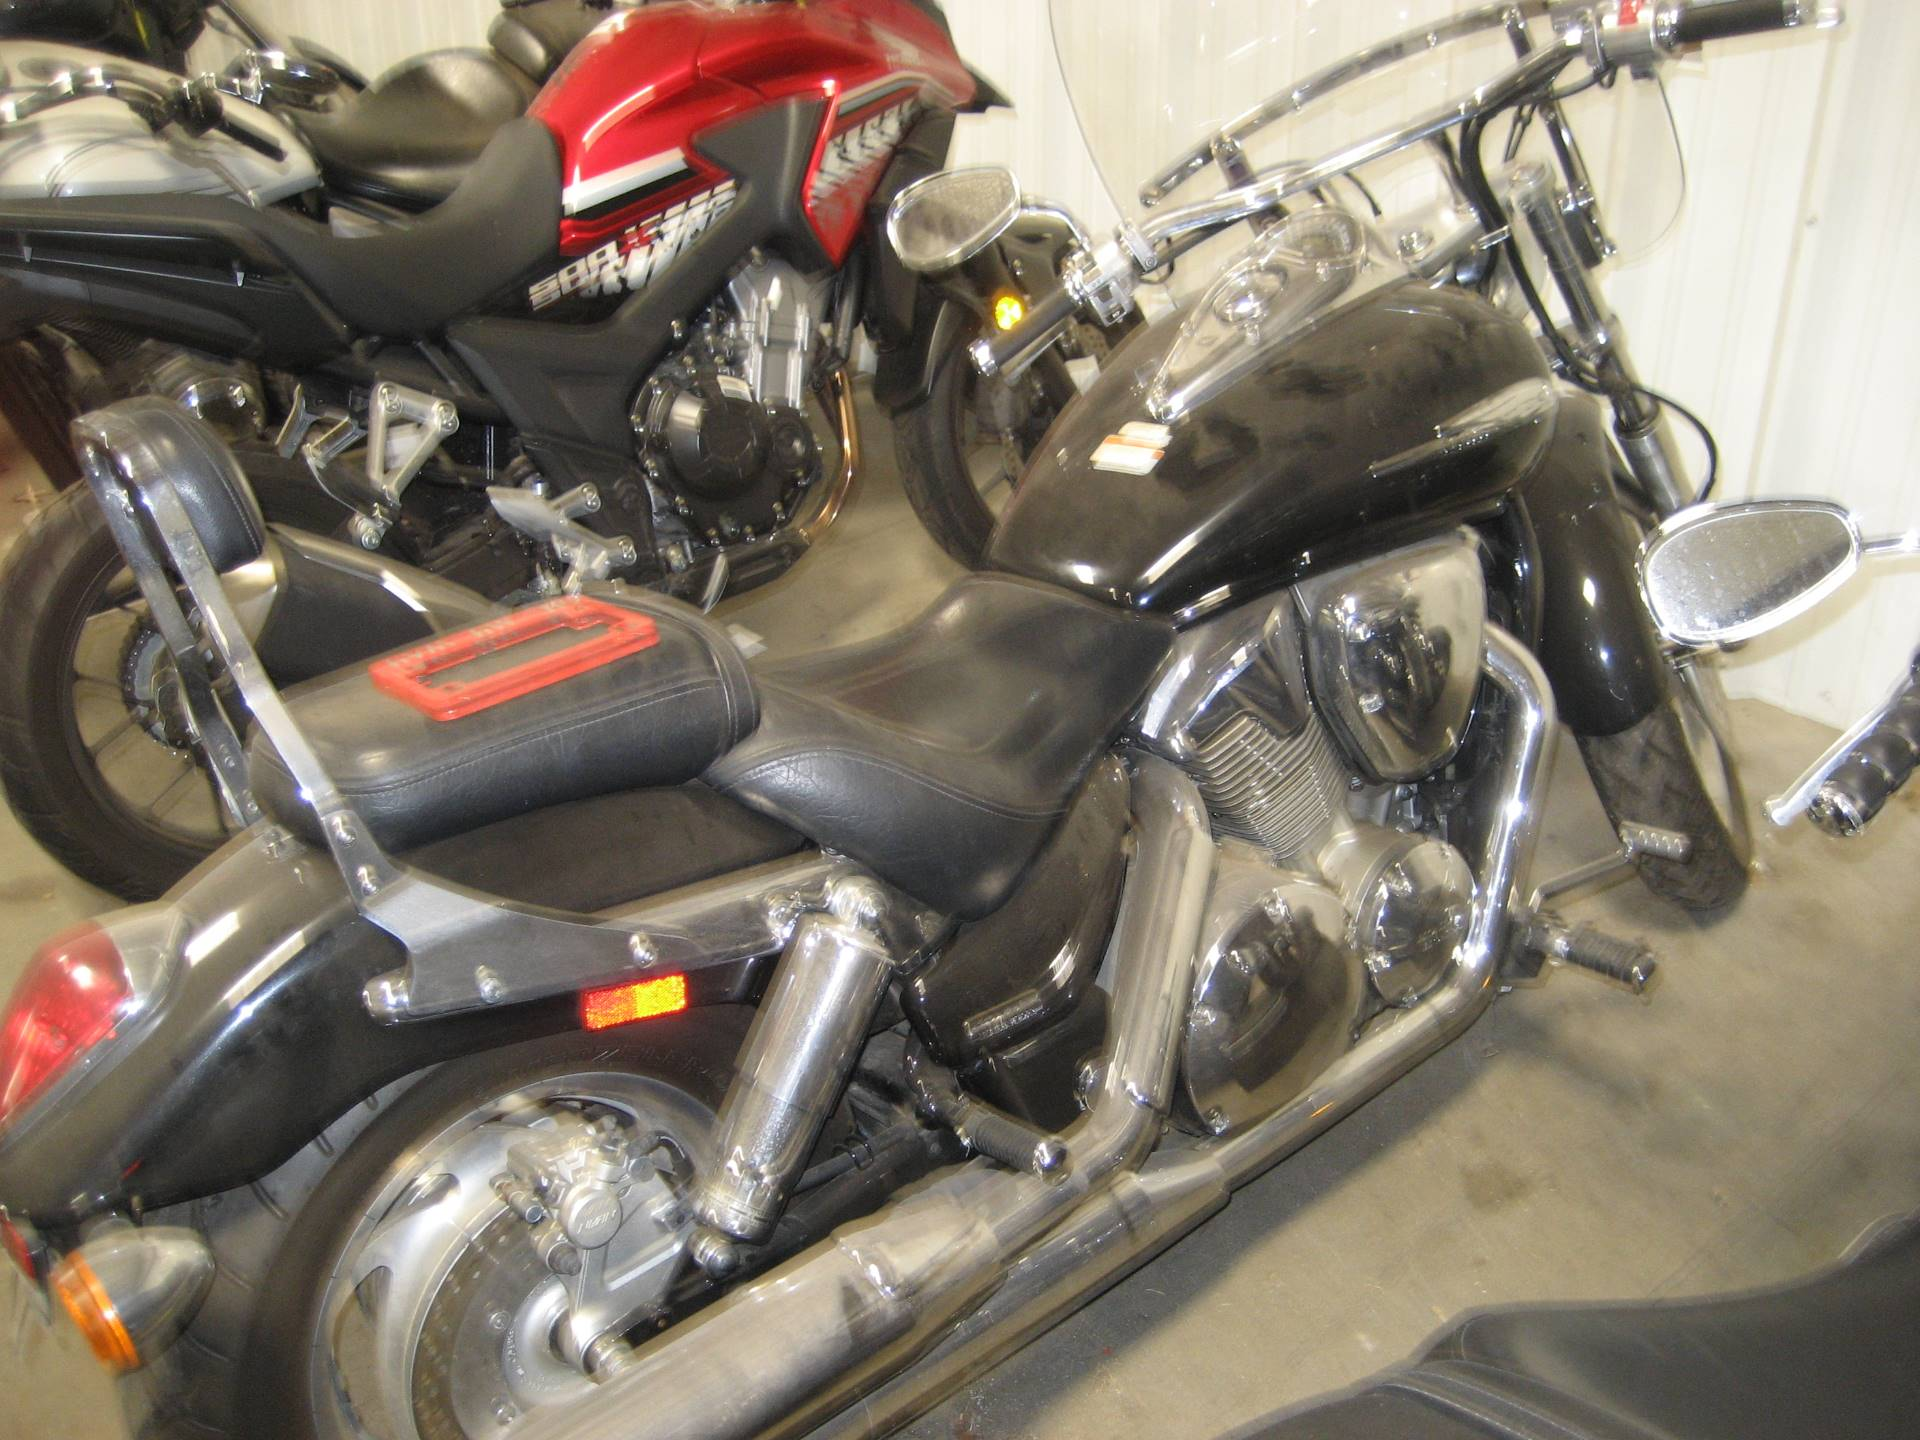 2006 Honda VTX™1300C in Shawnee, Oklahoma - Photo 2